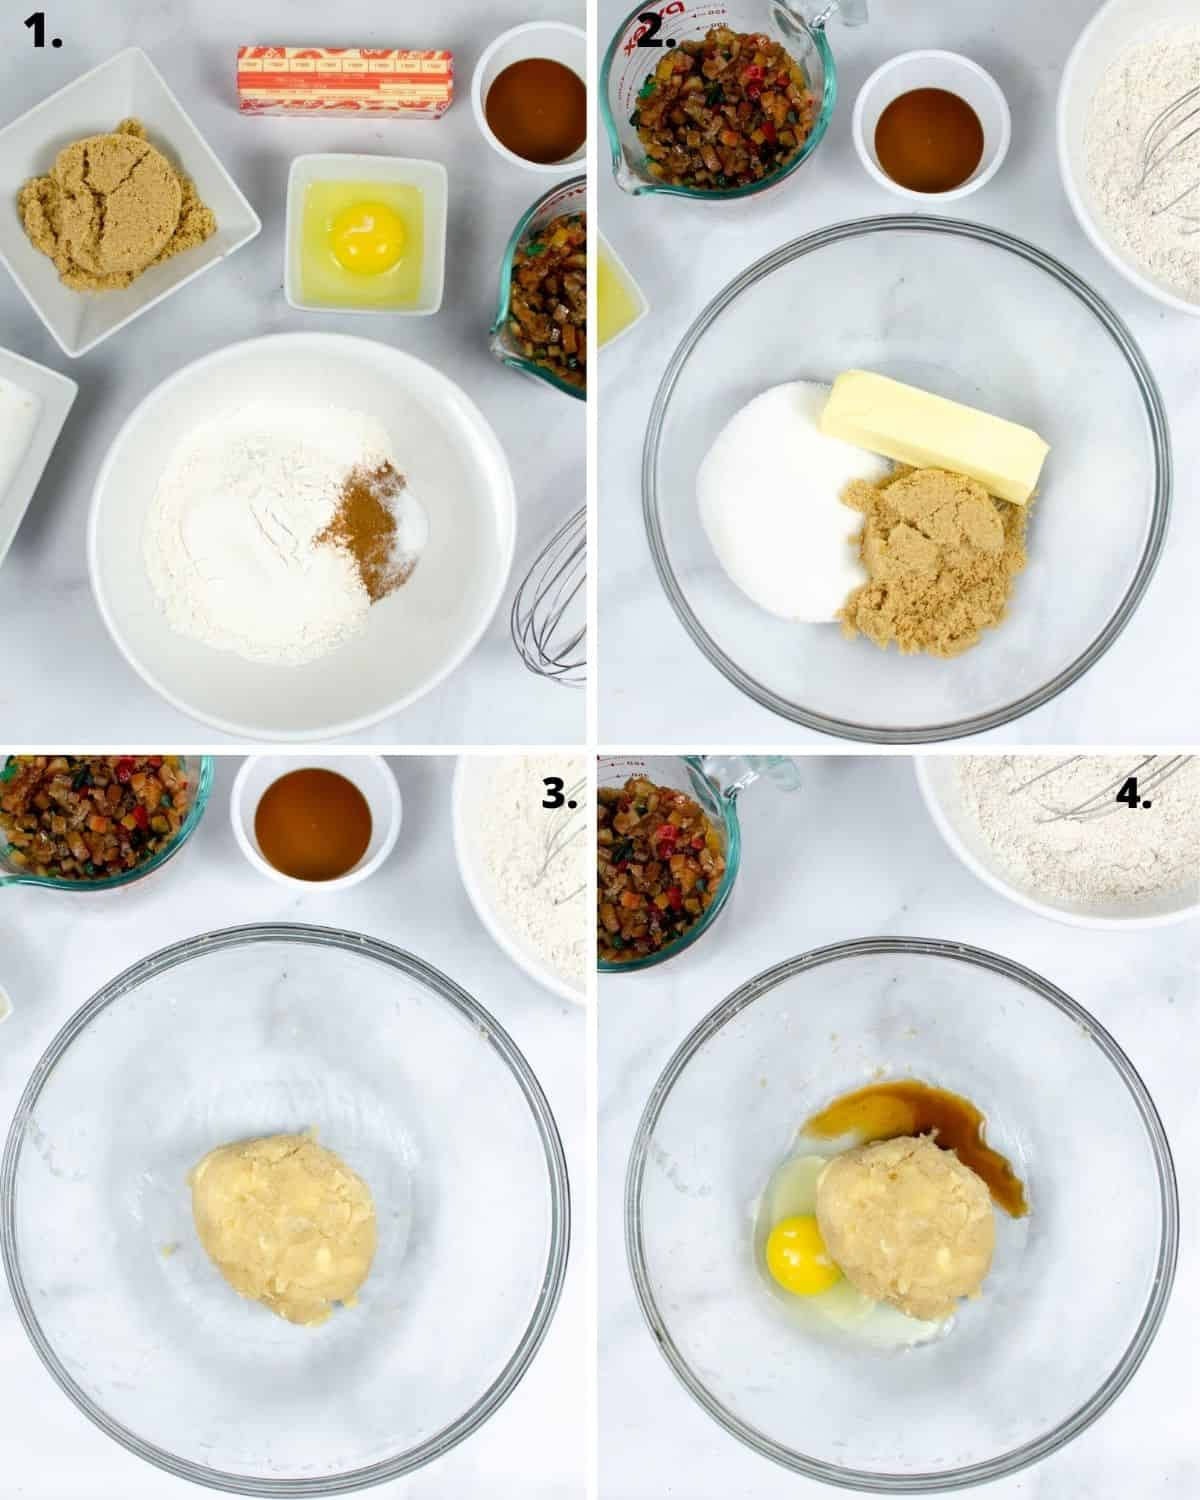 Step by step instructions of incorporating spices into flour to make cookies.